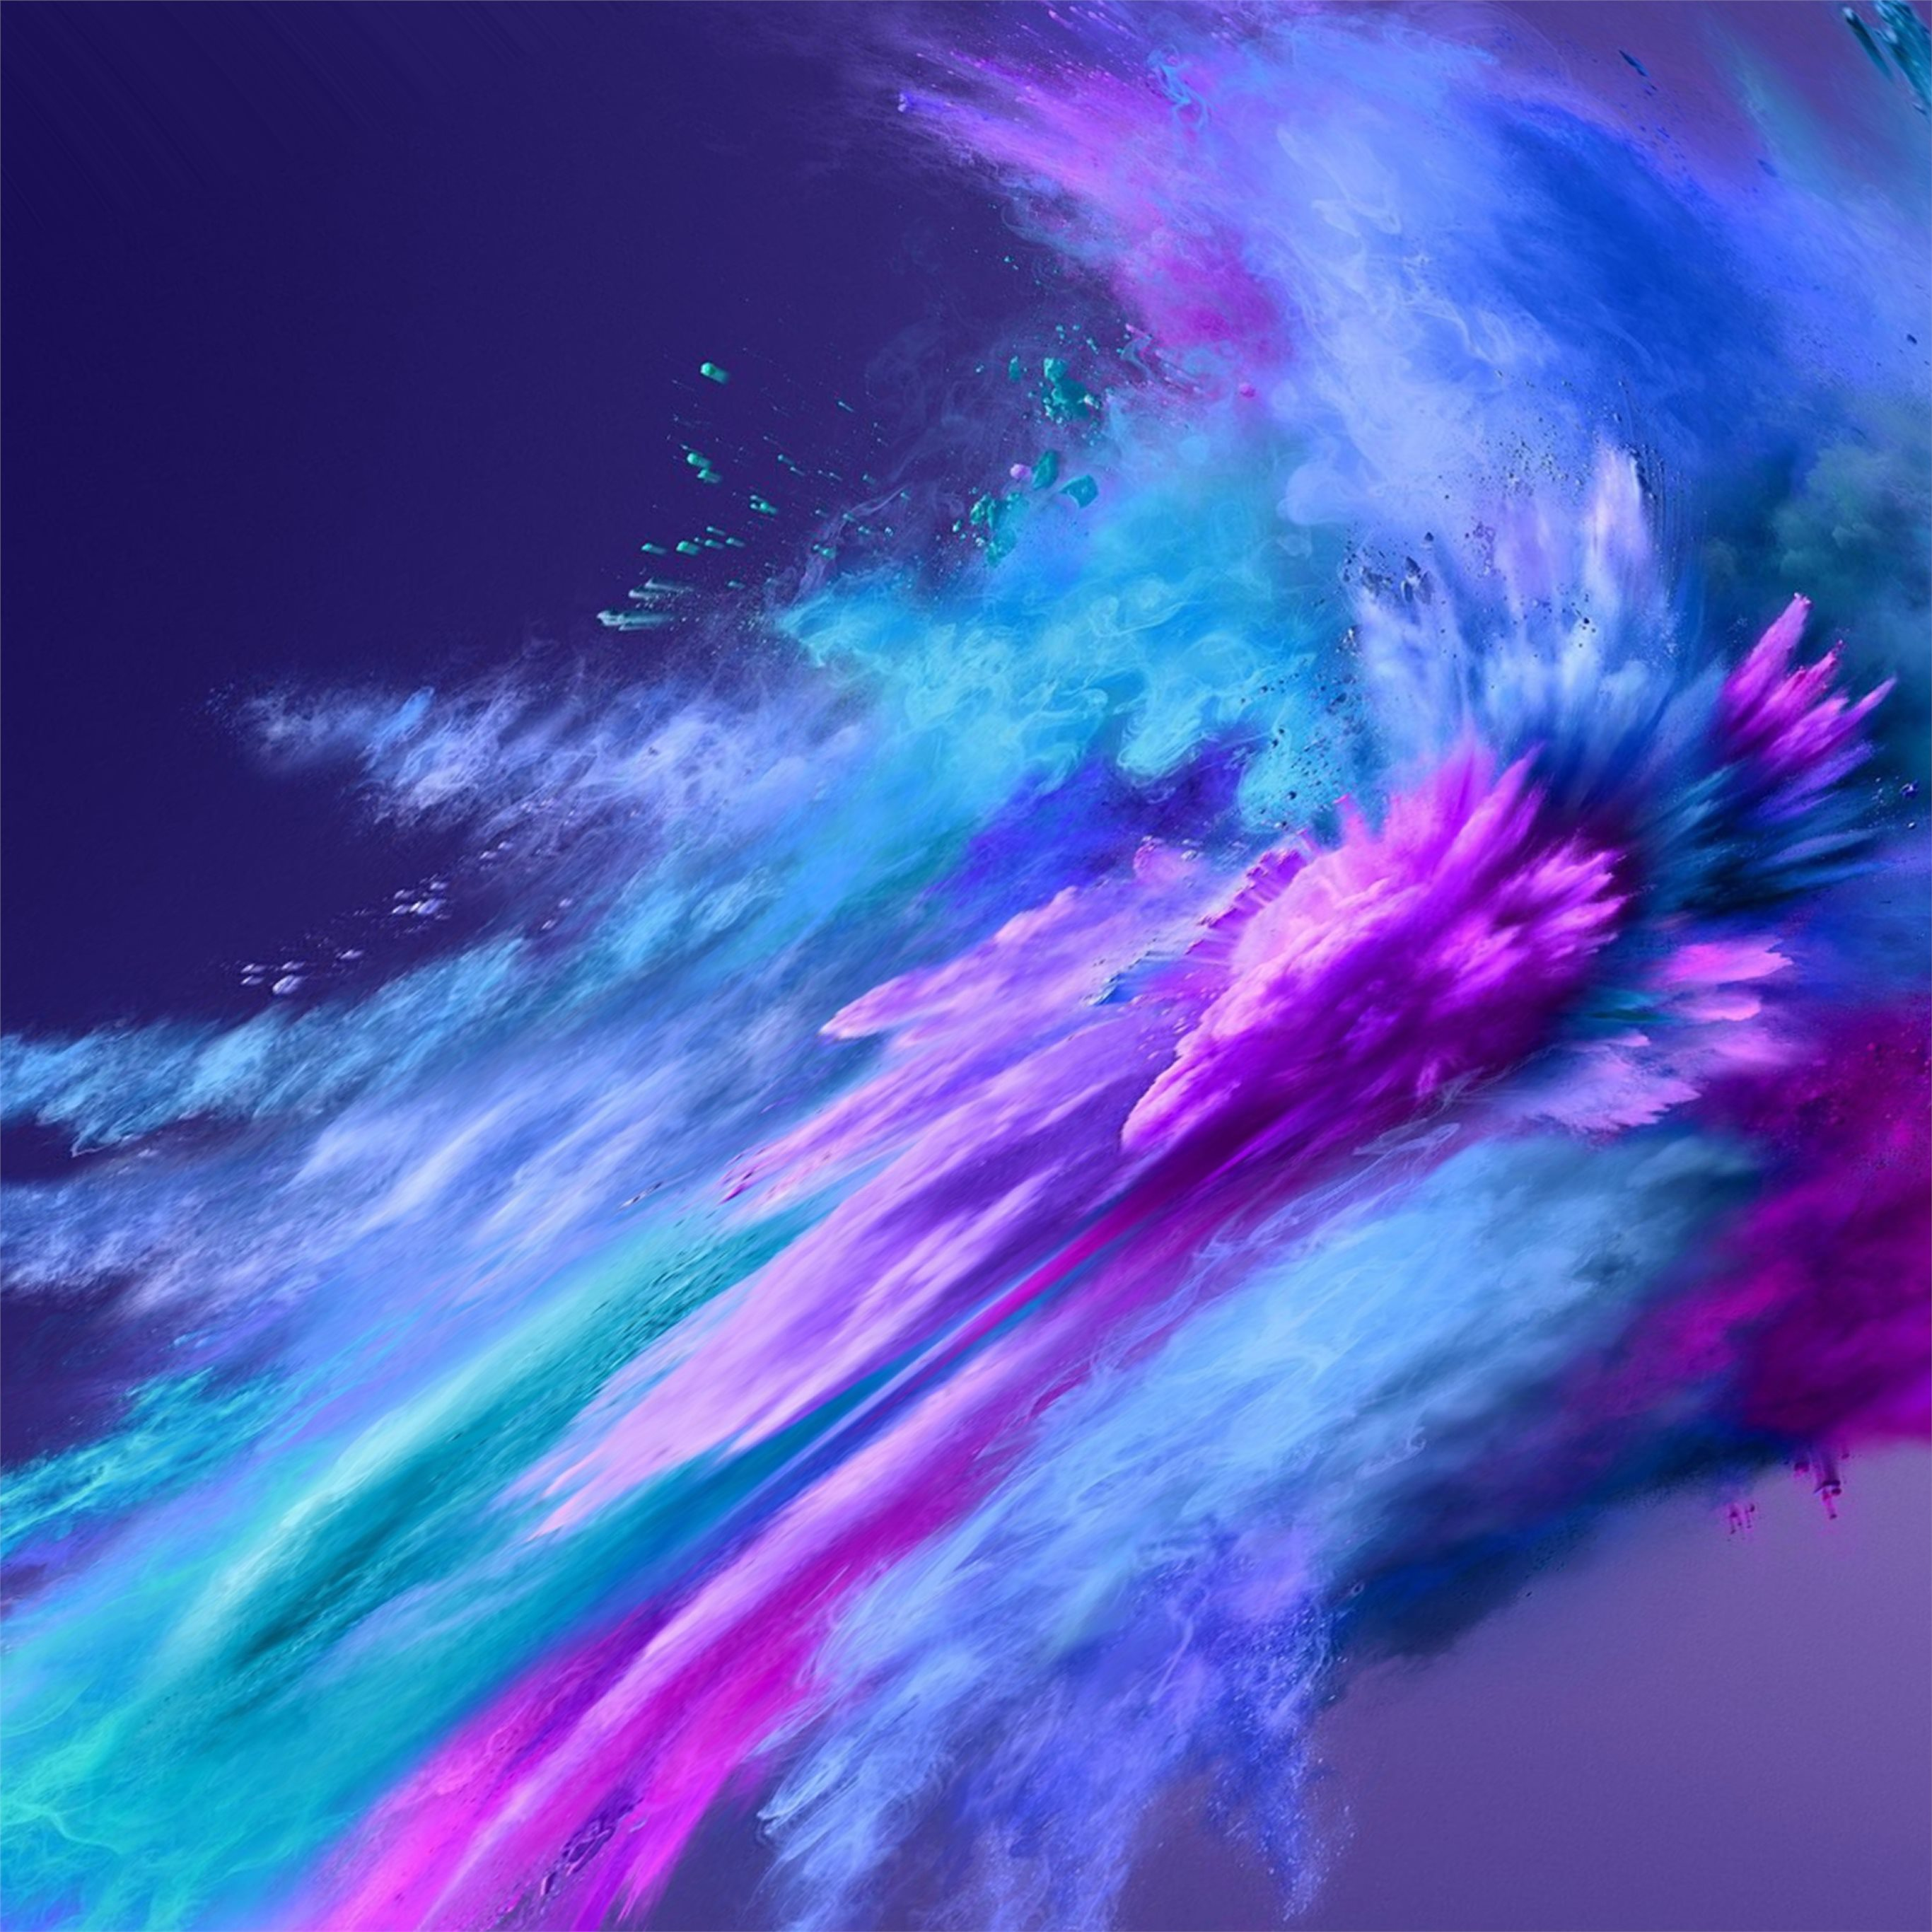 Color Powder Spray Abstract 4k IPad Pro Wallpapers Free